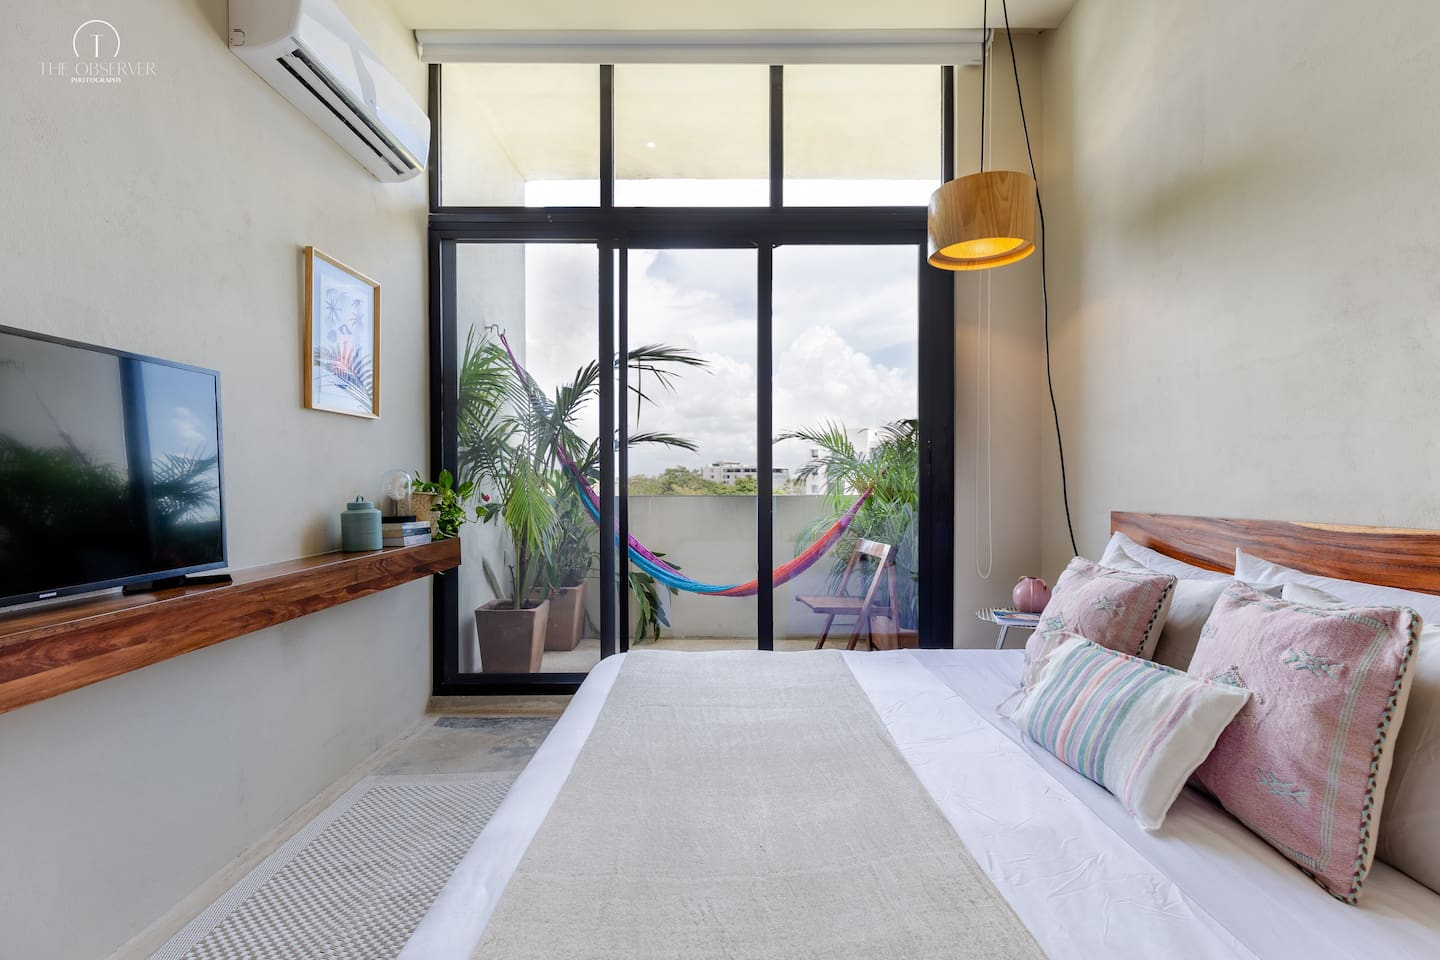 King size bed. Balcony with hammock. Smart TV. Air Conditioner.